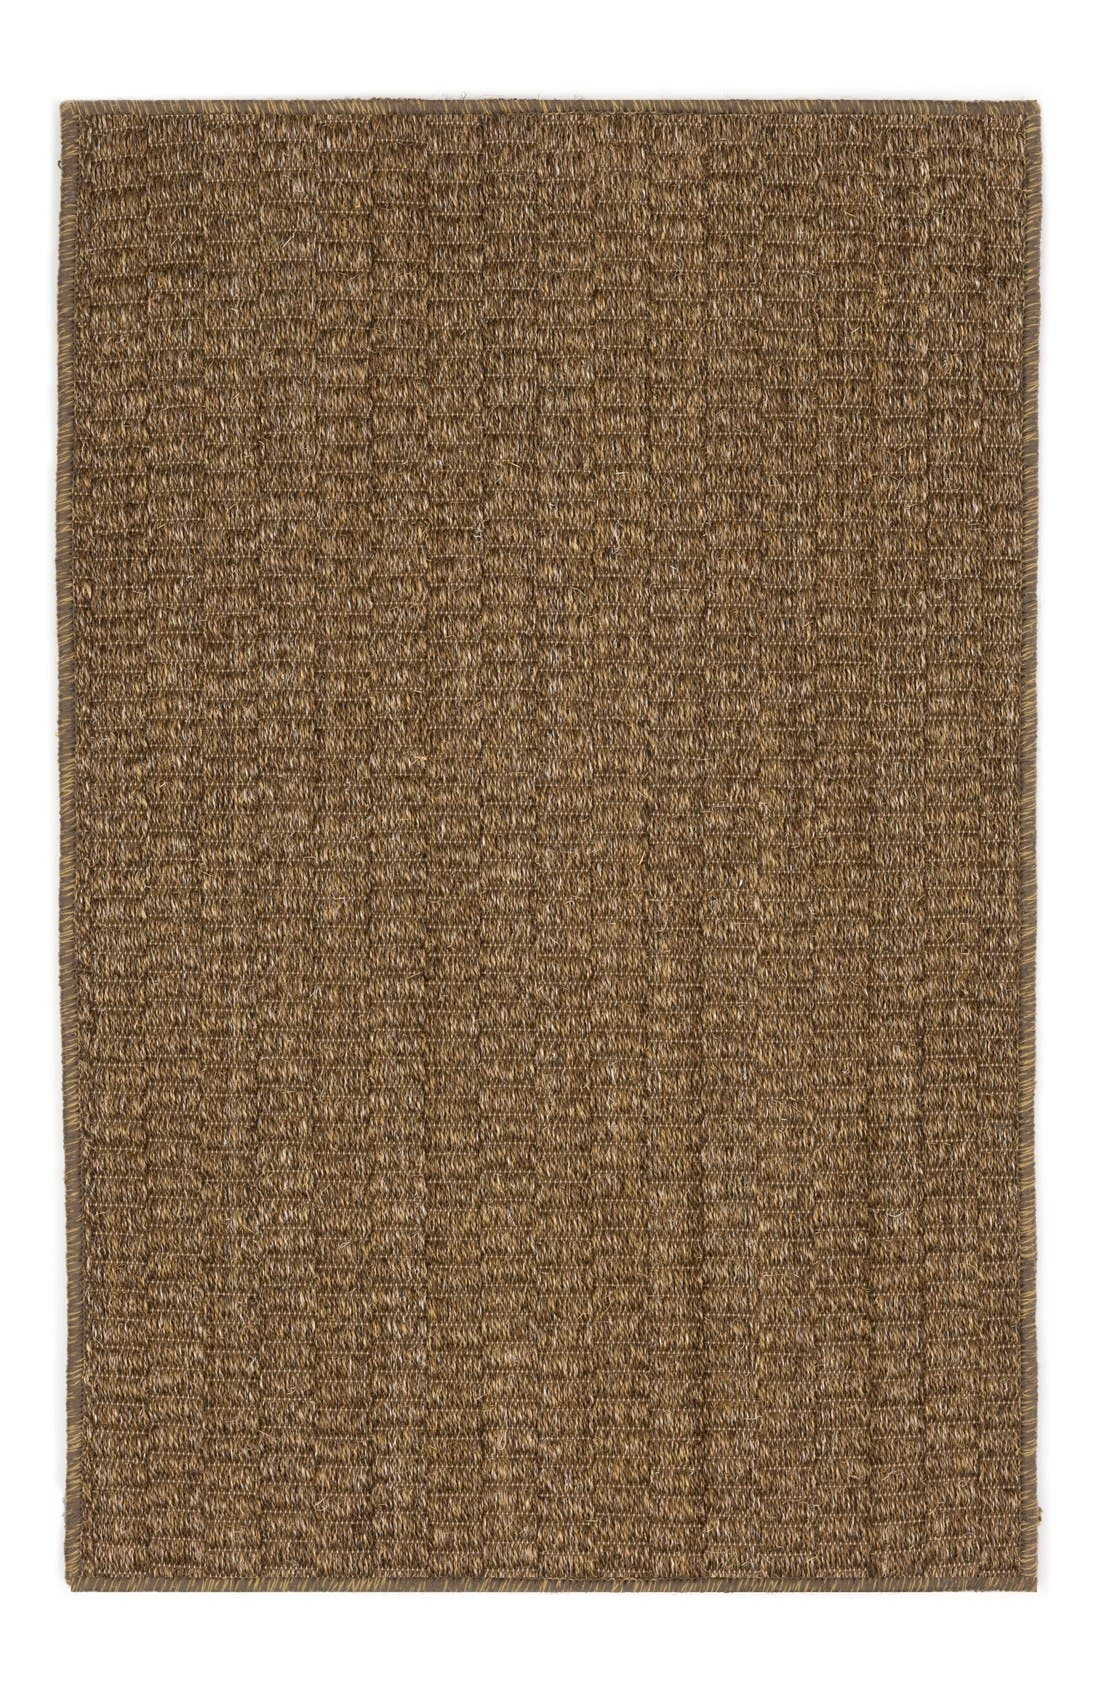 Main Image - Dash & Albert Wicker Rug